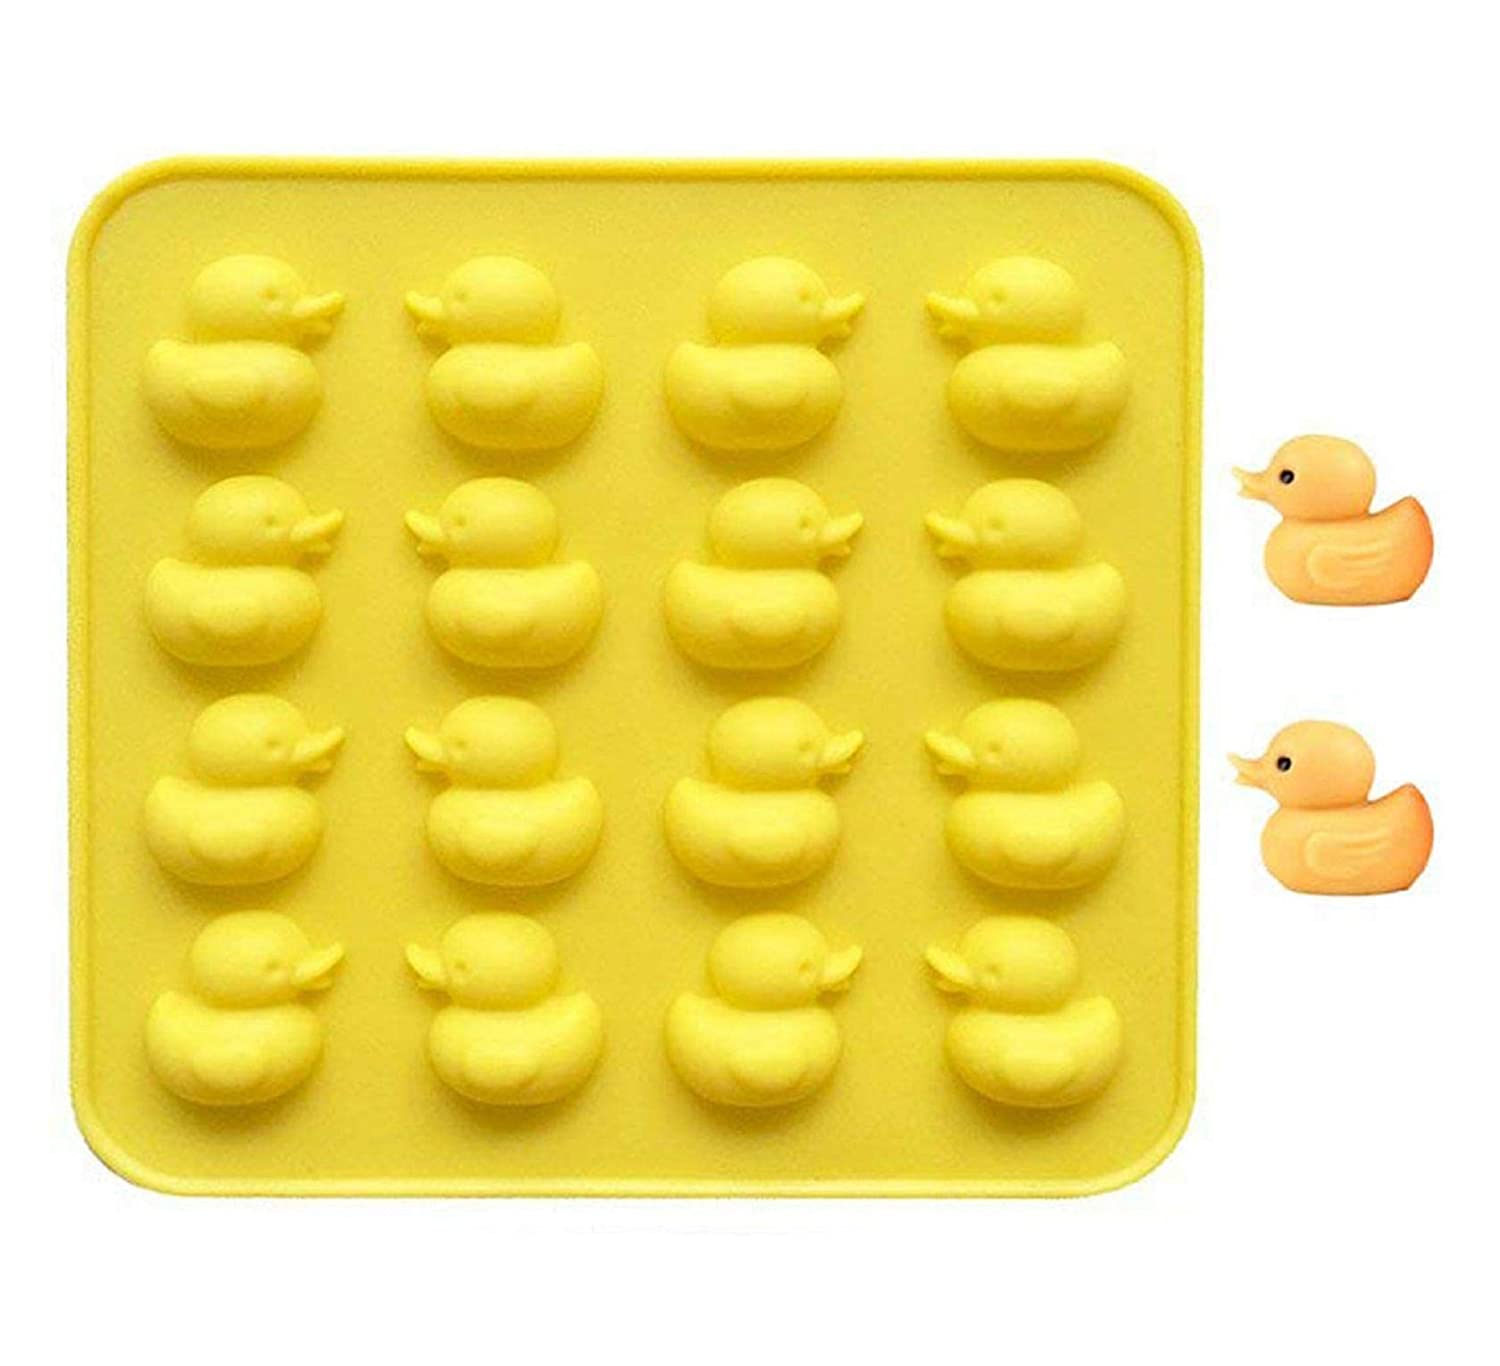 Vertily Chocolate Mould,Silicone Gel Non-stick Chocolate Jelly and Candy Mold Cake Baking Mold Chocolate Cupcake Ice Soap Butter Molds Easter Baking Tools Silicone Baking mold Making Kit